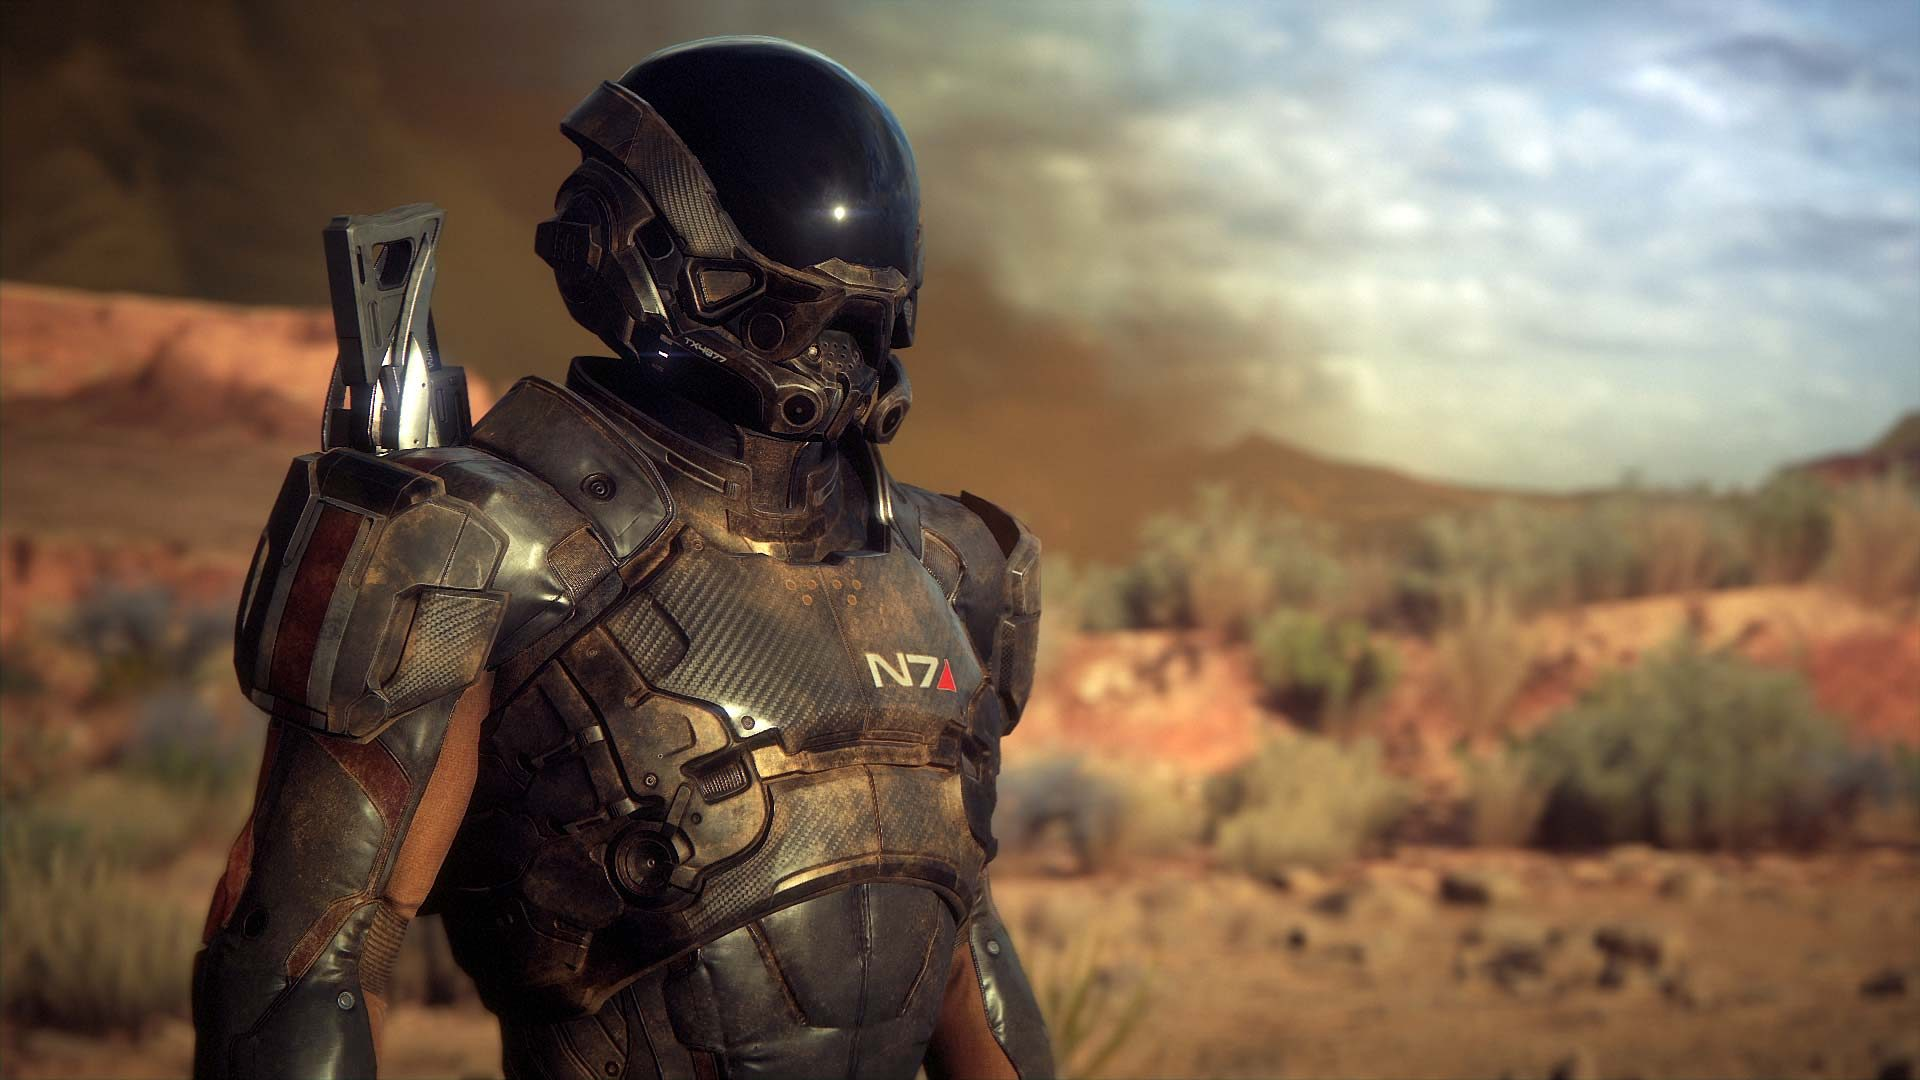 New Mass Effect: Andromeda trailer released for N7 day!